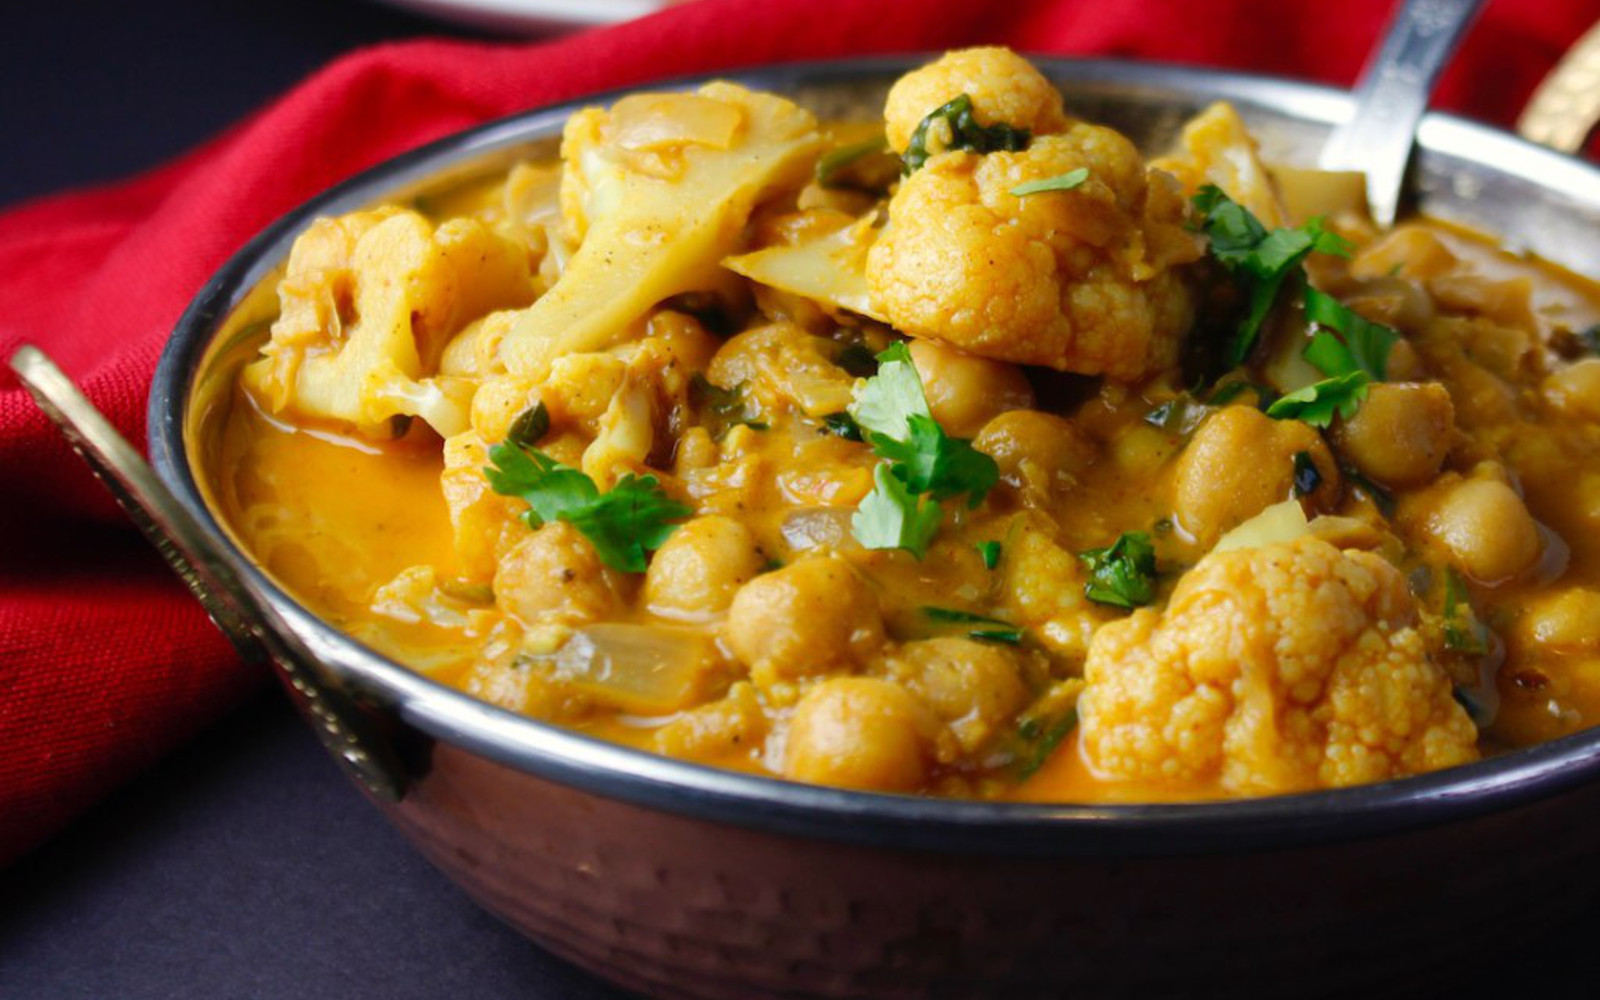 Middle Eastern Braised Chickpeas With Cauliflower